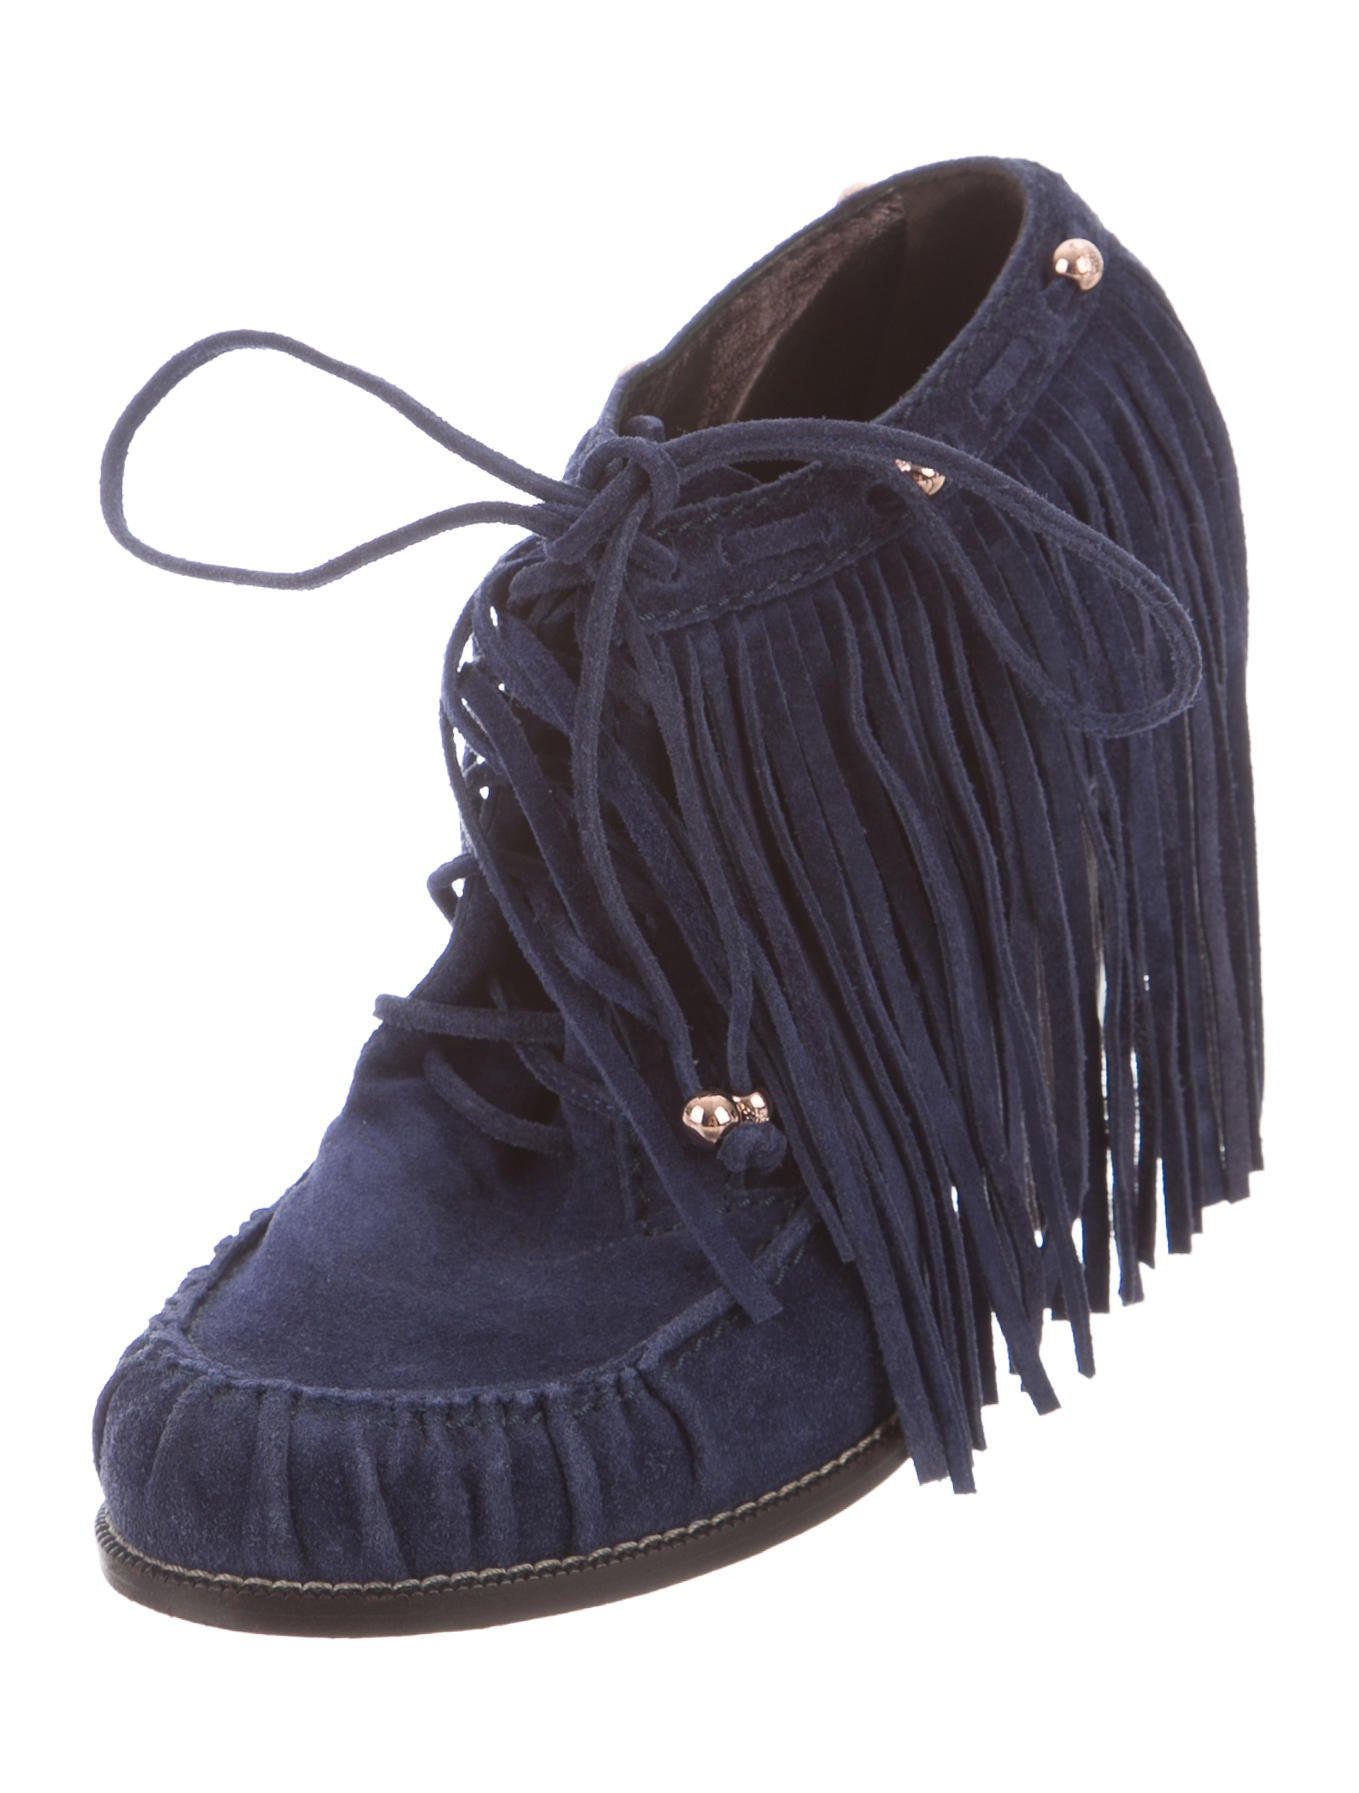 Womens Chestnut Brown Faux Suede Moccasin Fringe Ankle Boots Booties NEW. $ Buy It Now. Free Shipping. Free Returns. 19+ Sold. SPONSORED. Women Ankle Boots Lady Fringe Tassel Flats Matte Suede Lace Up Moccasins Shoes. New Sam Edelman Suede Black Women's Fringe Heels Ankle Boots Booties Size